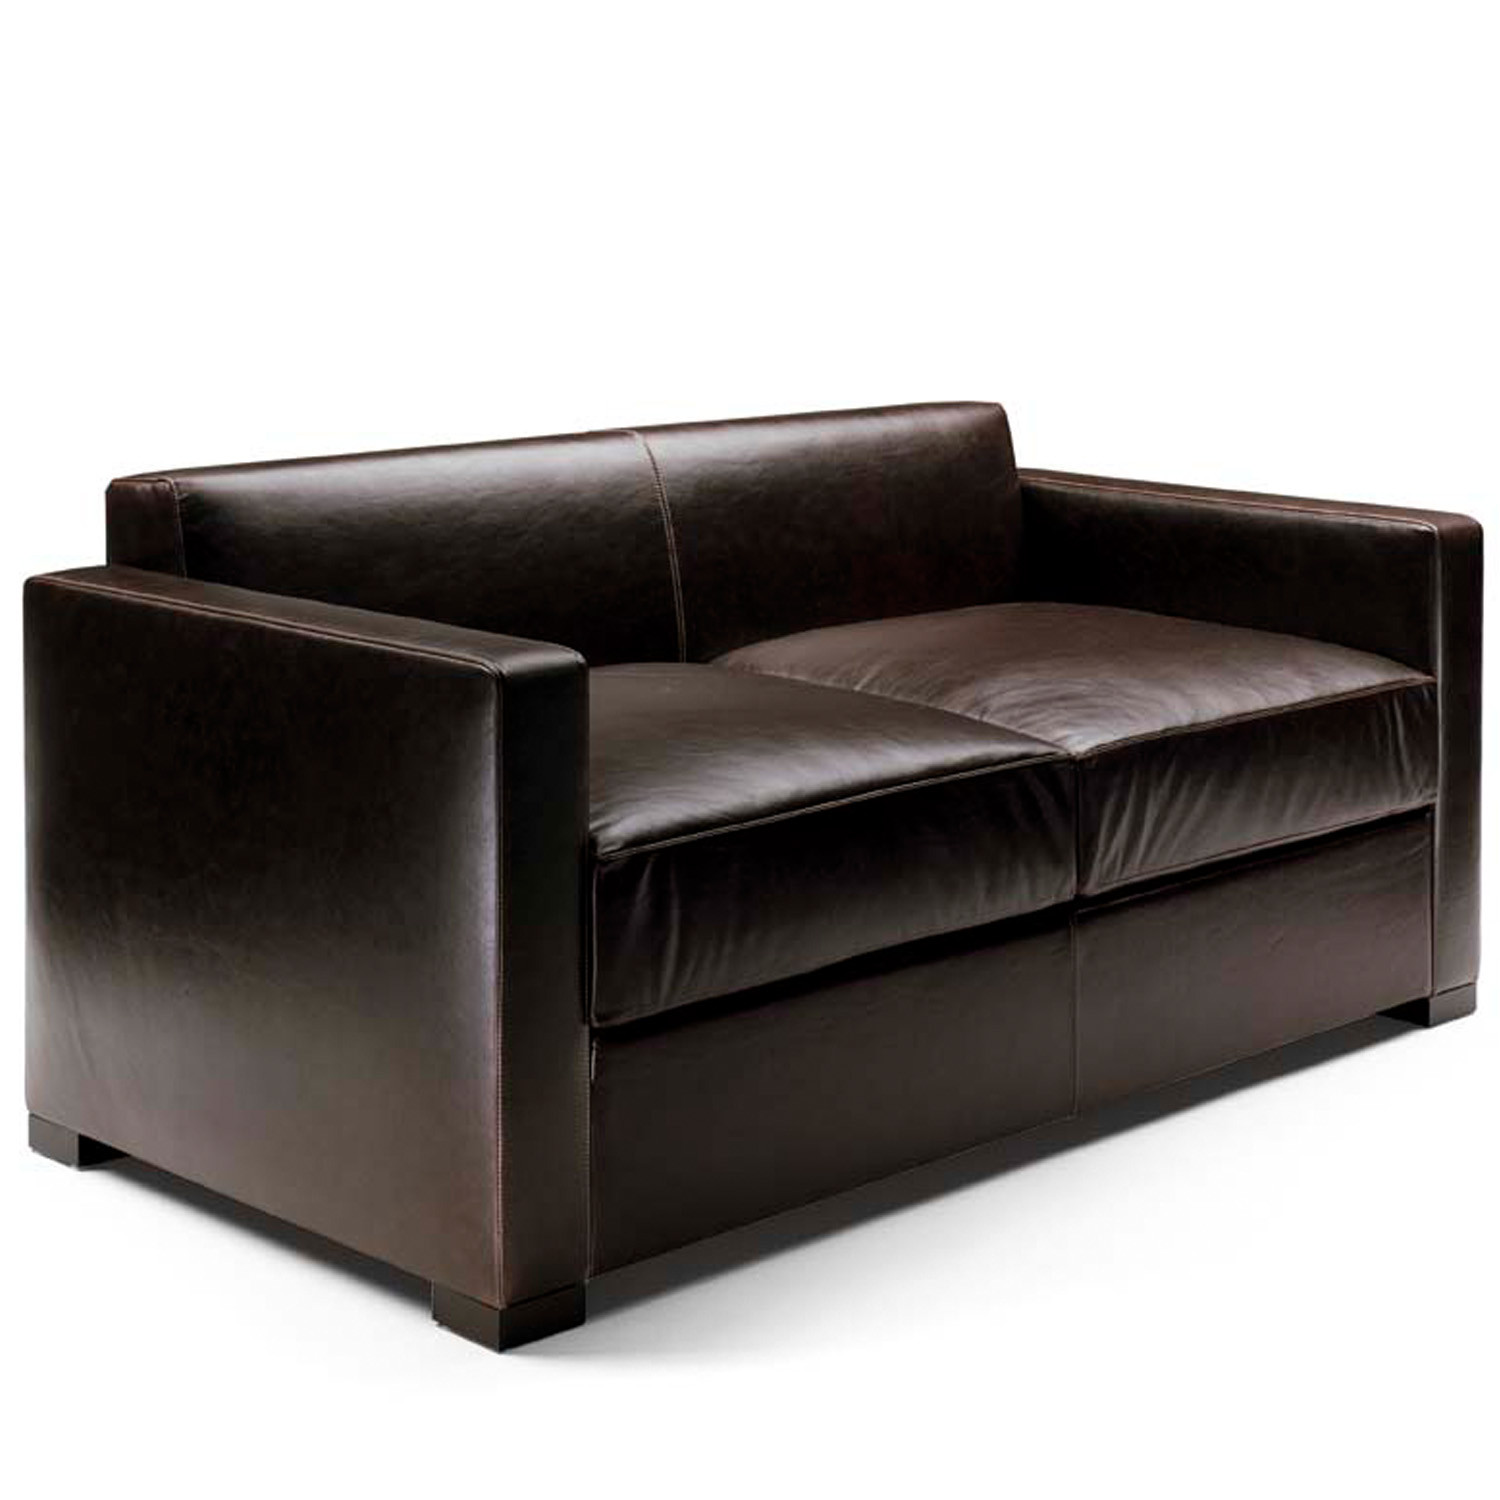 Linea A Sofa 2 Seater